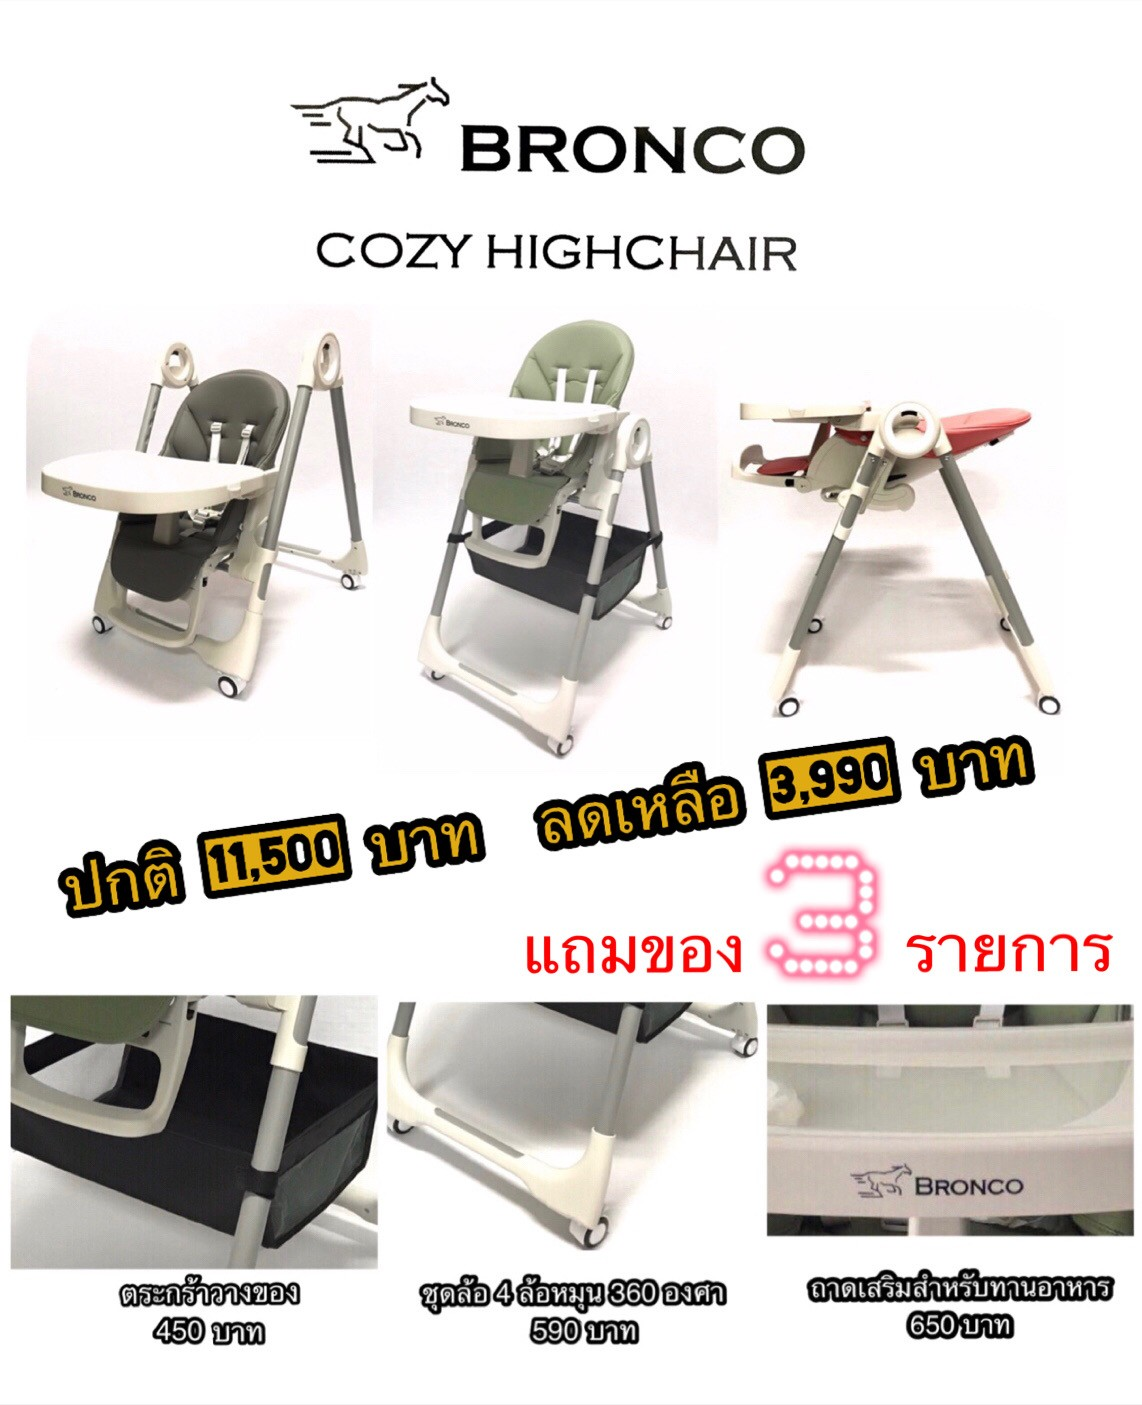 BRONCO COZY HIGH CHAIR